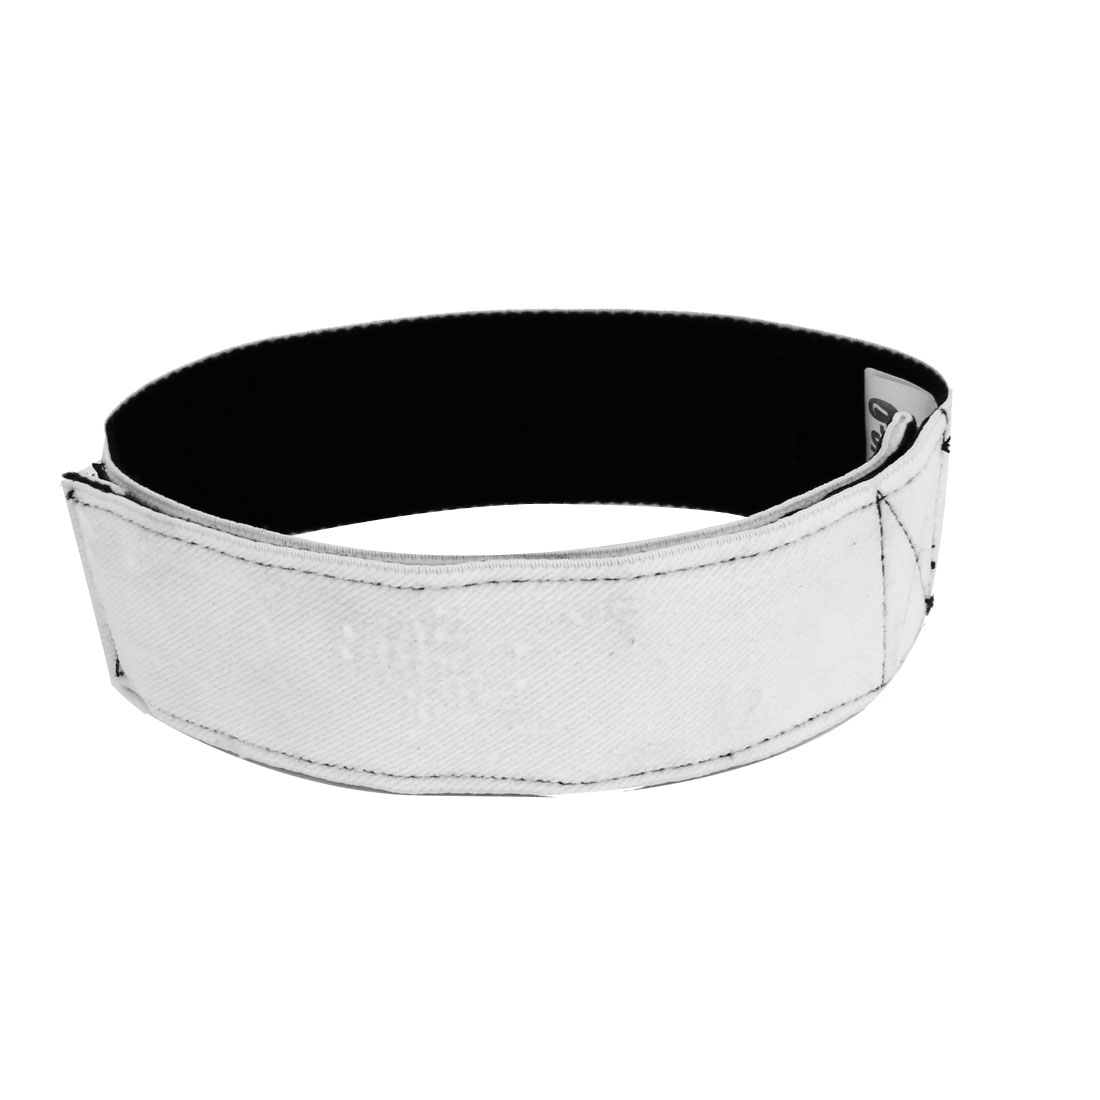 Loop Hook Closure 3 Legged Race Tie Elastic Band Strap Black White